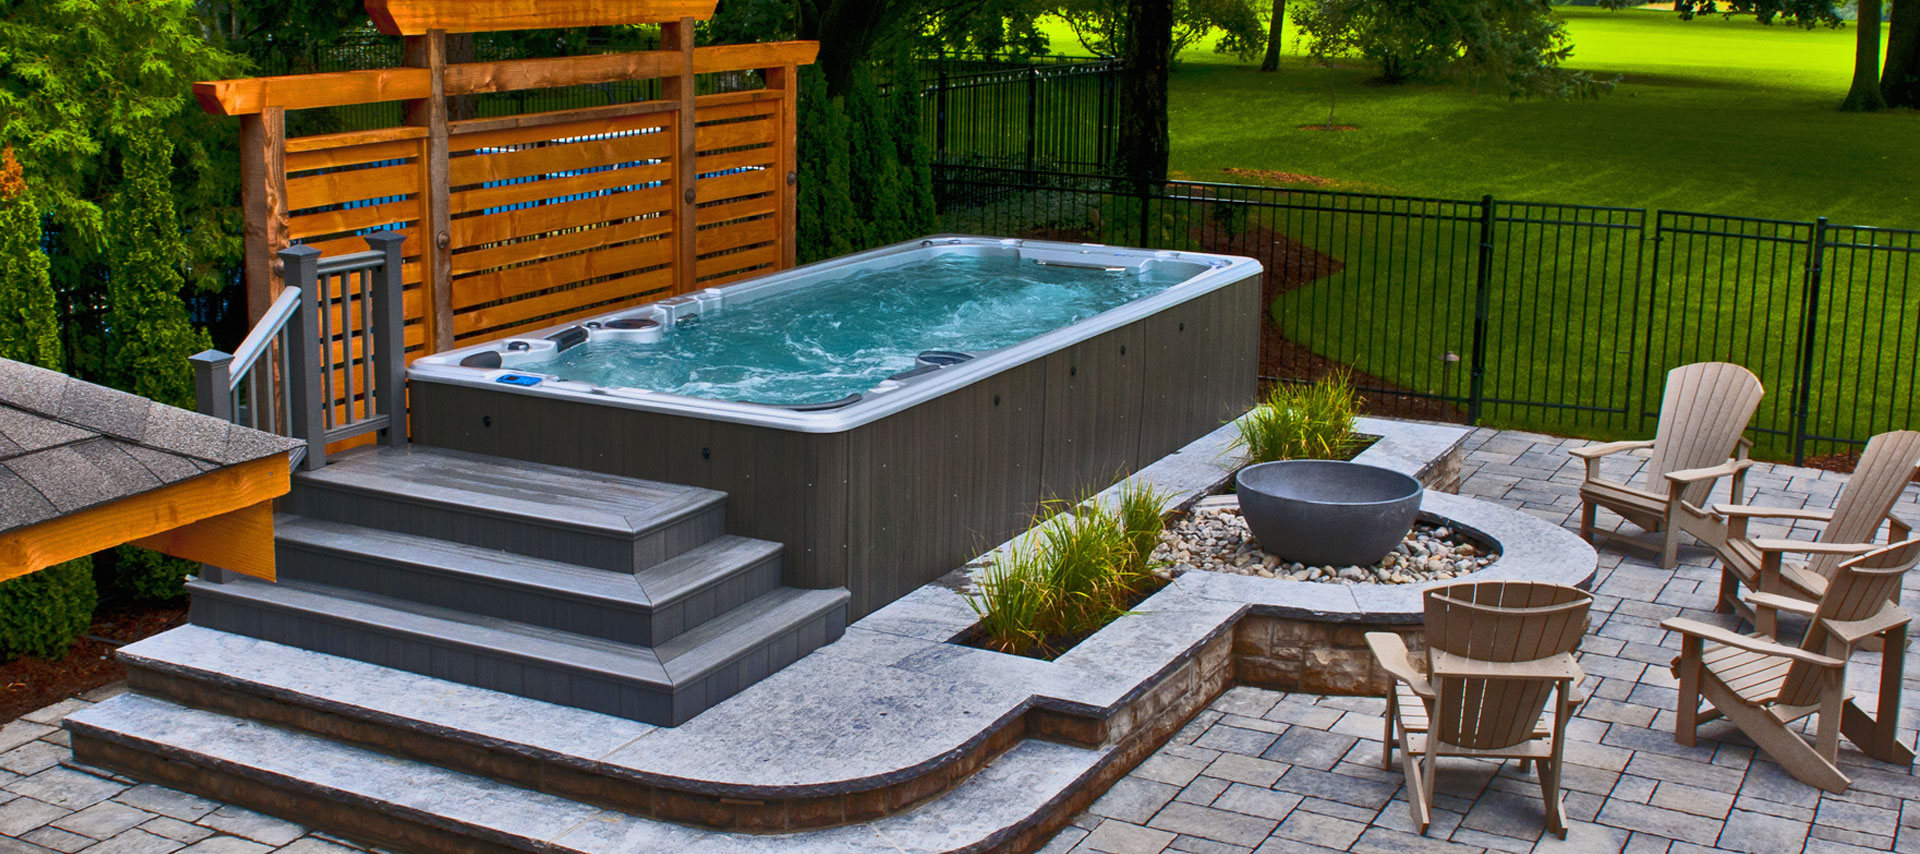 jacuzzi hot images pool photo en swimming tub roof backyard free